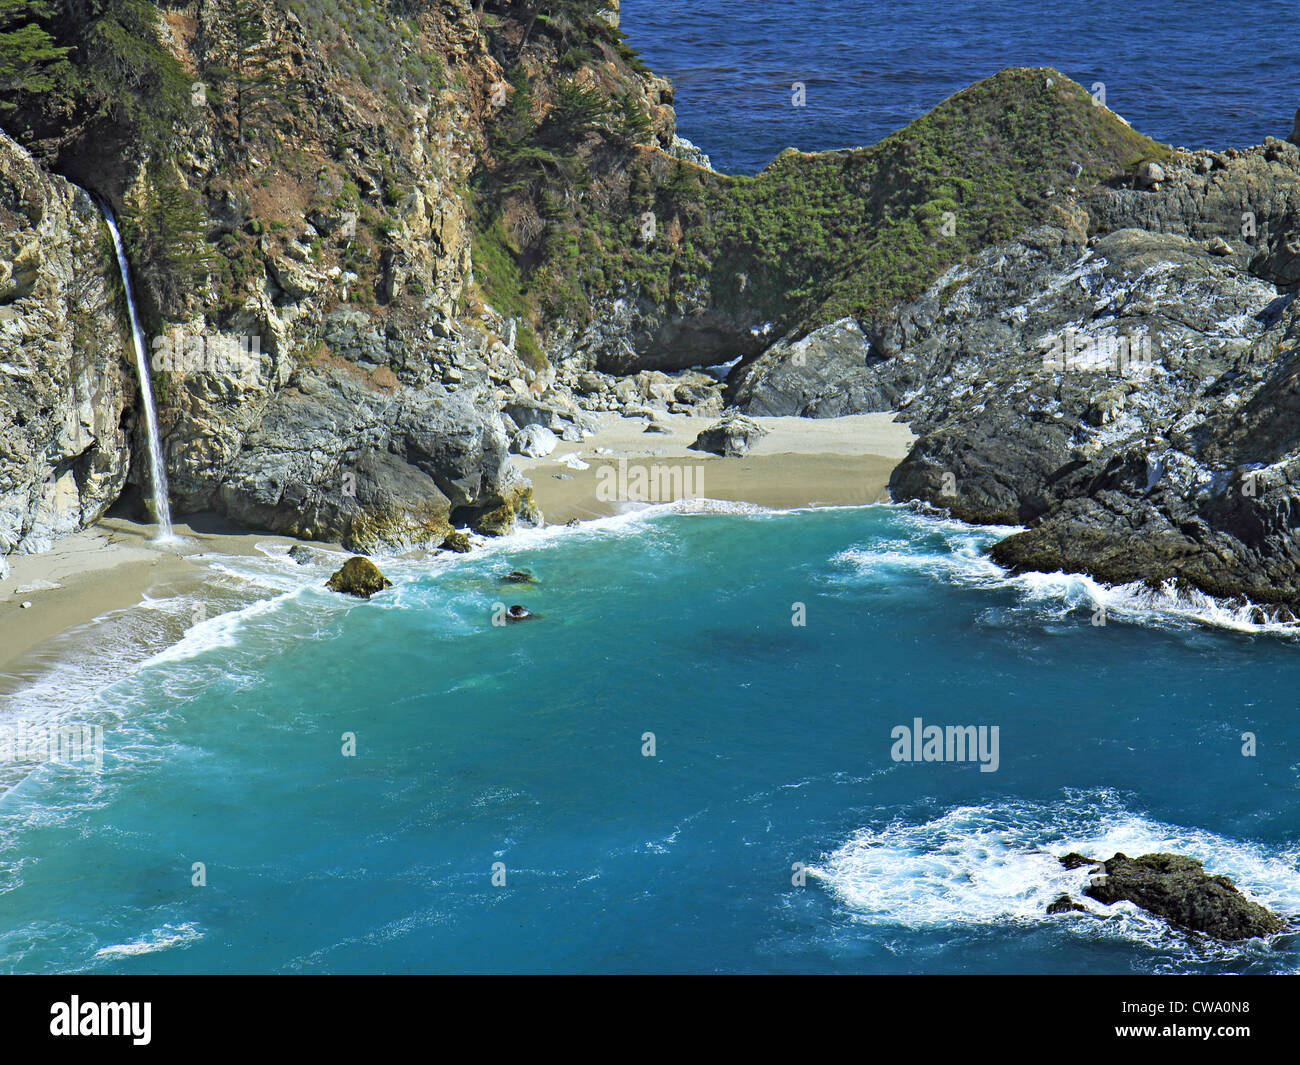 Beautiful waterfall pouring onto beach in blue ocean cove. - Stock Image